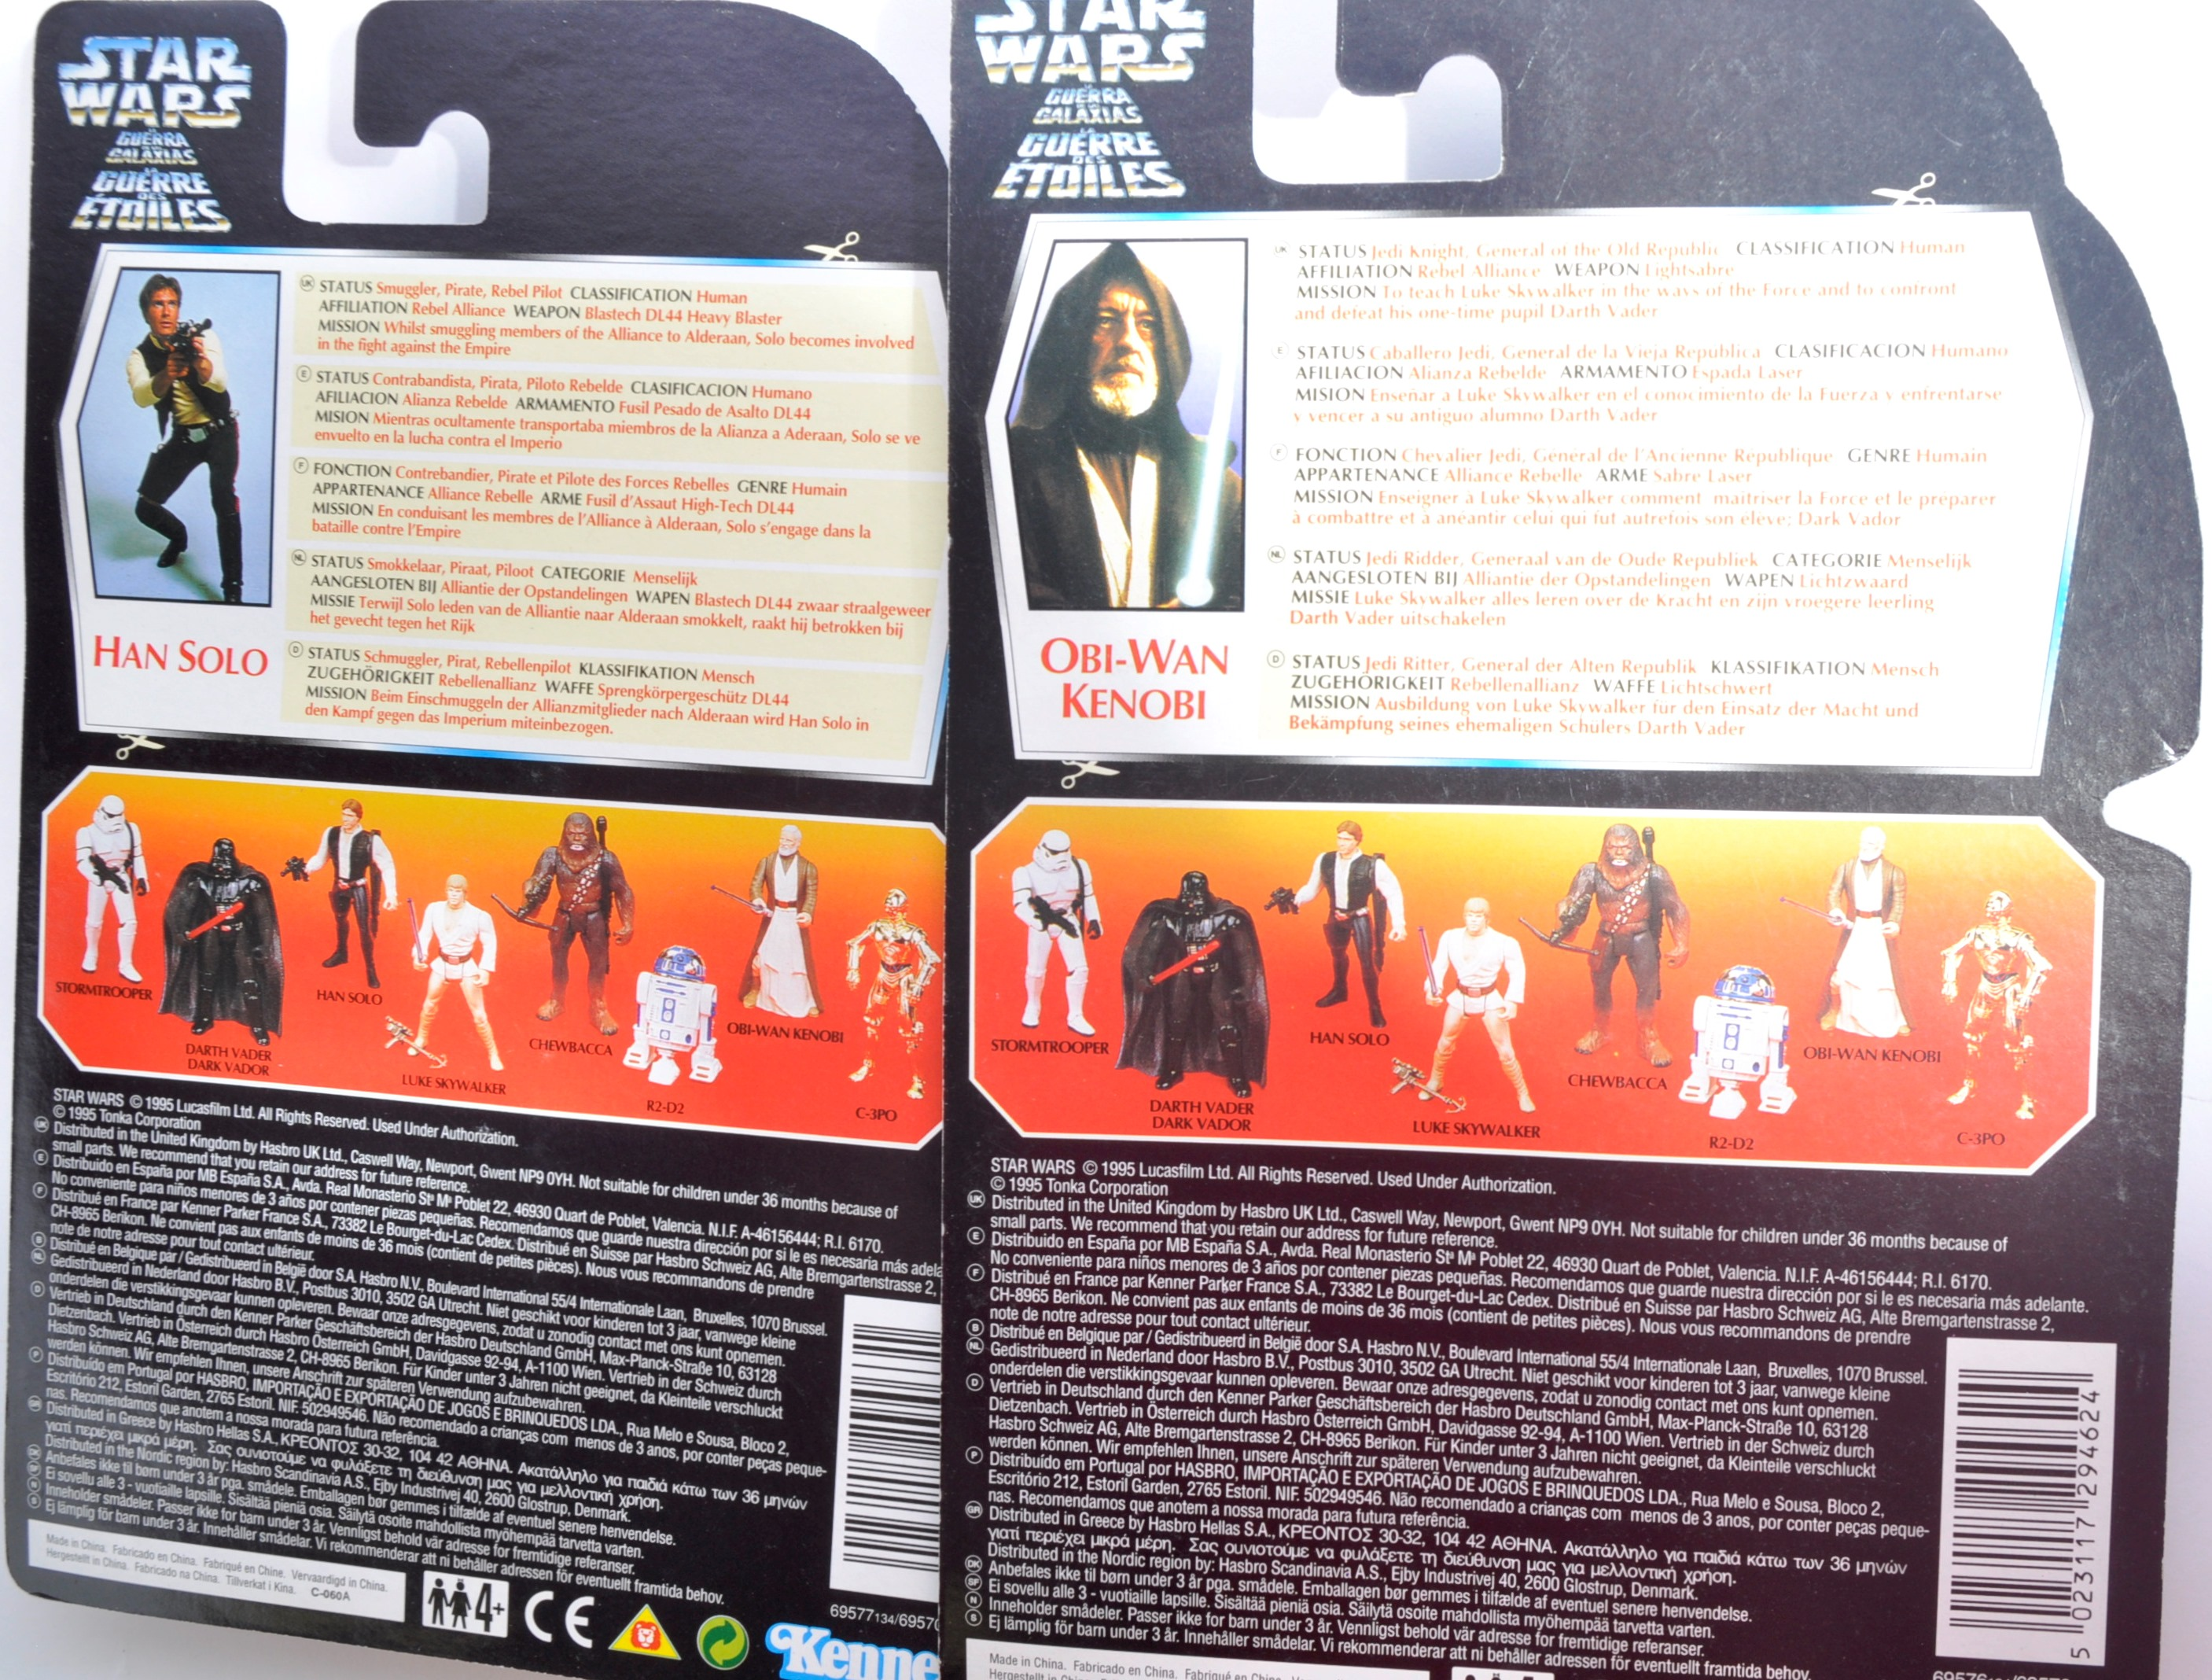 STAR WARS - COLLECTION OF KENNER CARDED ACTION FIGURES - Image 6 of 6